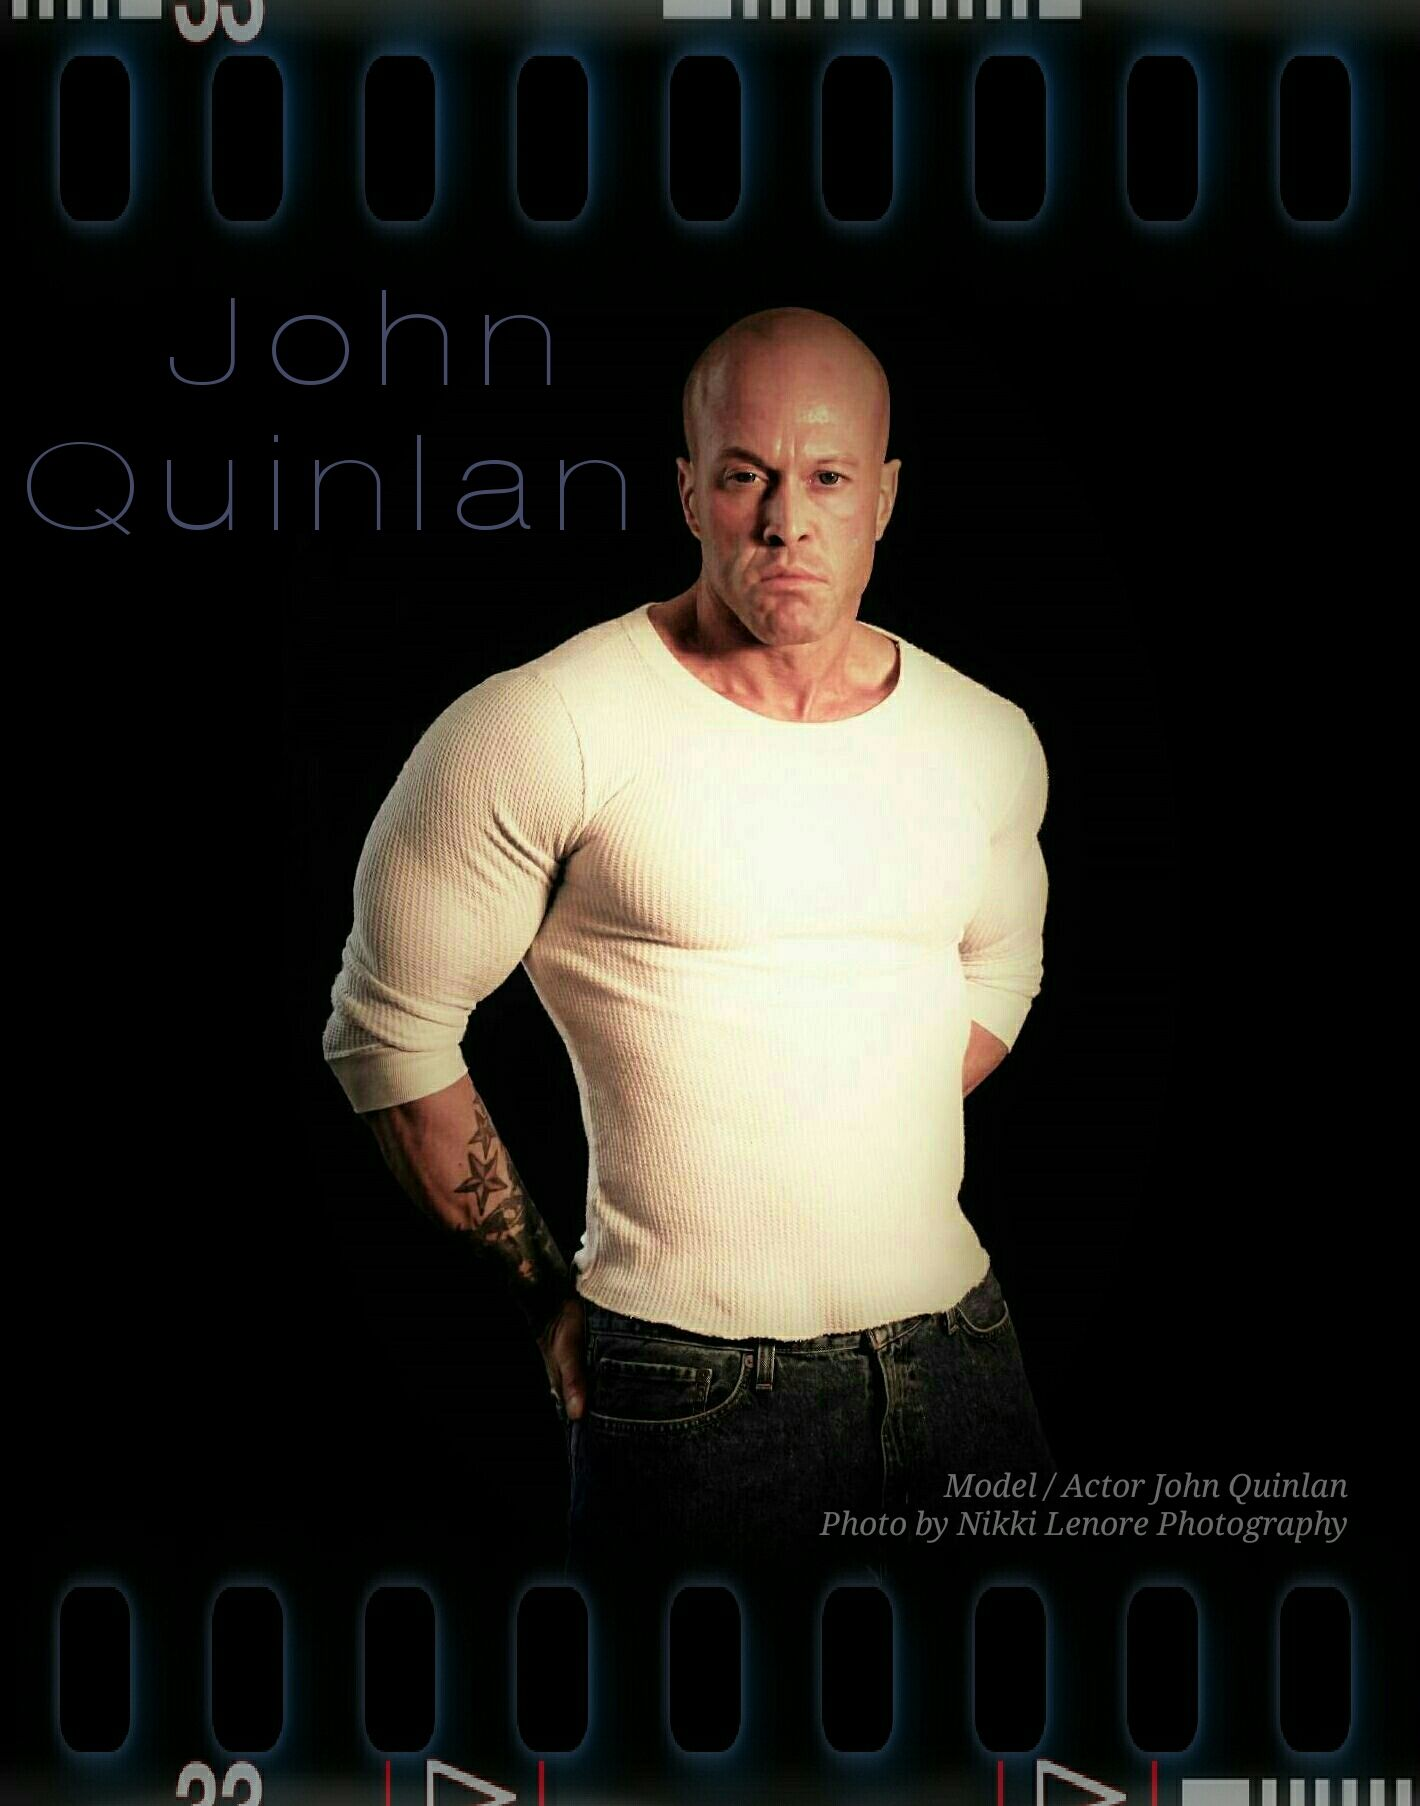 Model & Actor John Joseph Quinlan by Nikki Lenore Movie Film Poster #JohnQuinlan